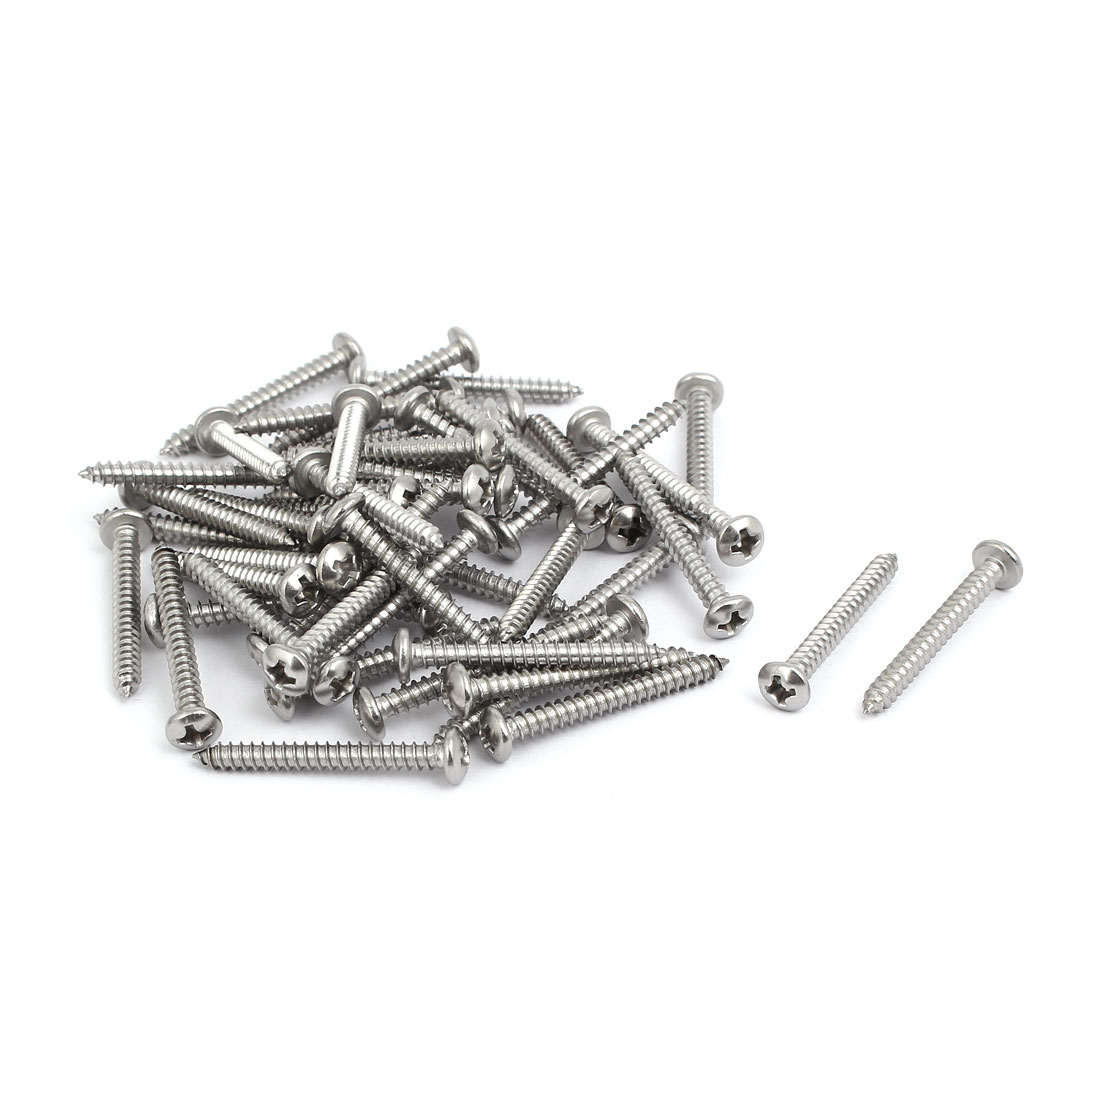 M3.5x30mm 304 Stainless Steel Phillips Drive Pan Head Self Tapping Screws 50pcs